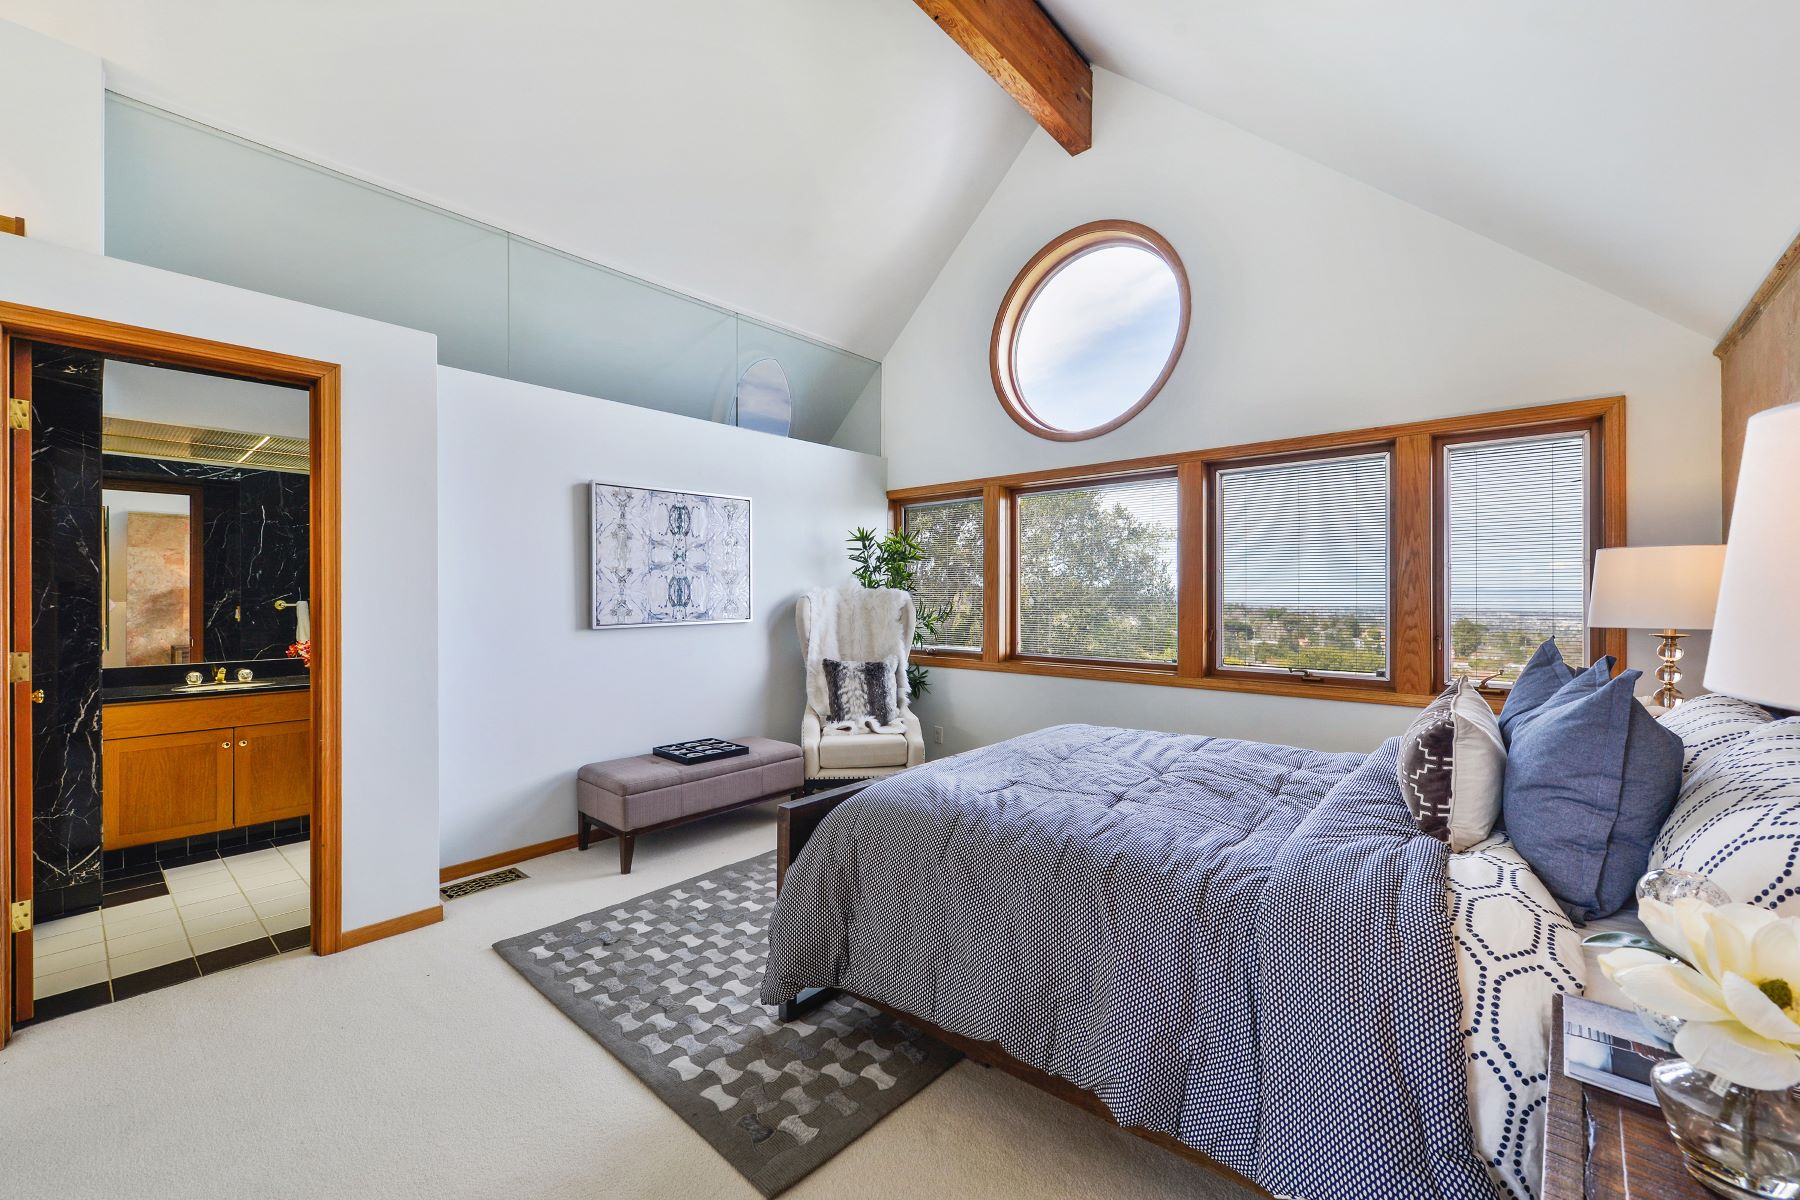 Additional photo for property listing at Contemporary Flair in Emerald Hills with Panoramic Bay Views 727 Hillcrest Way Emerald Hills, California 94062 United States